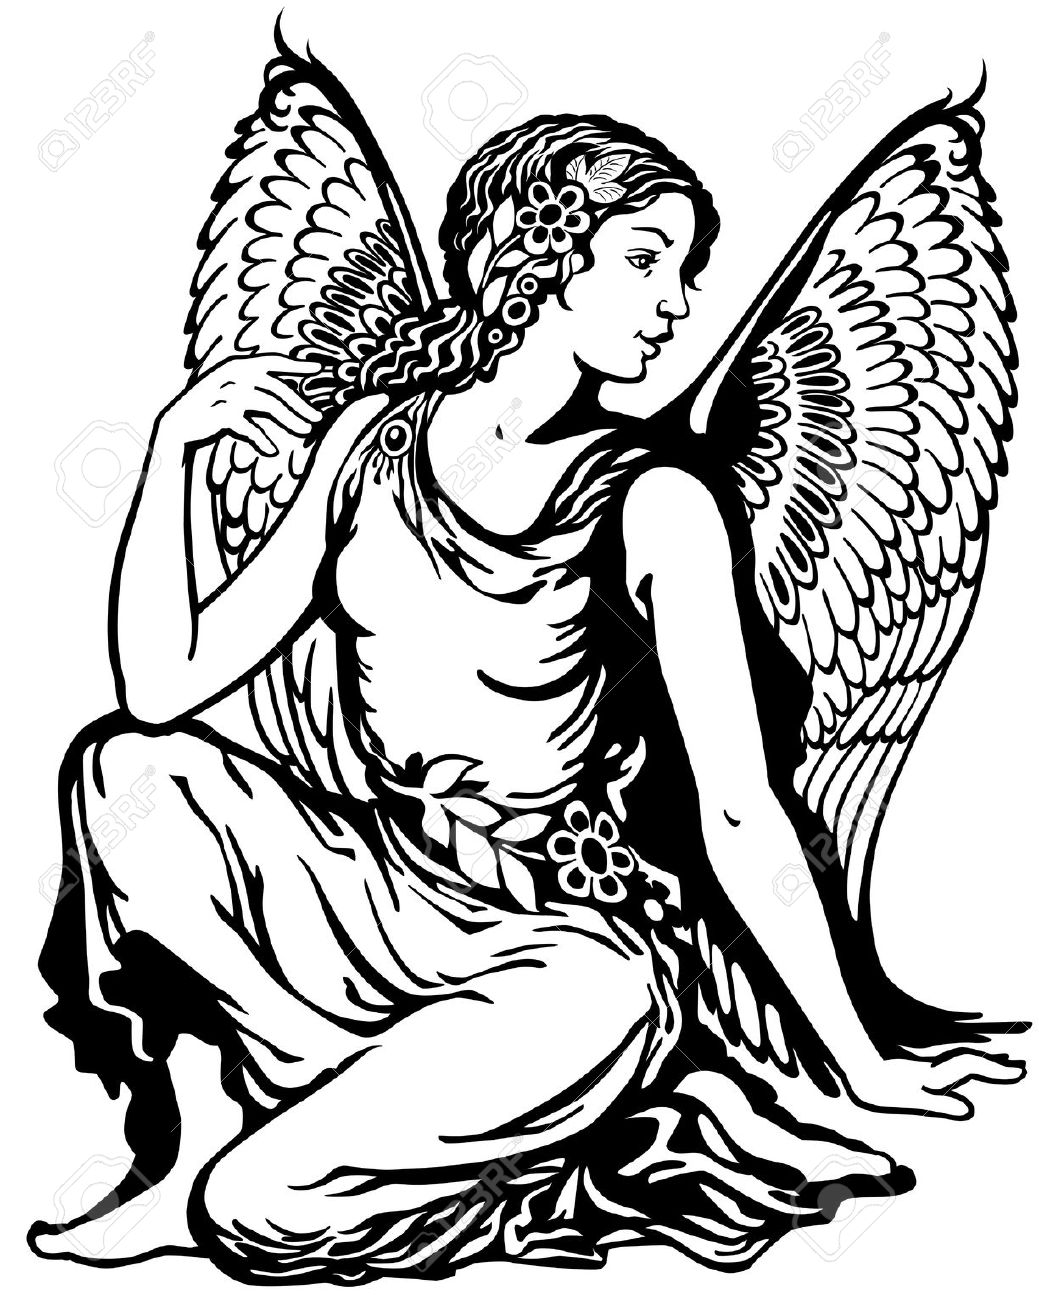 Angel Tattoo Stock Photos & Pictures. Royalty Free Angel Tattoo.